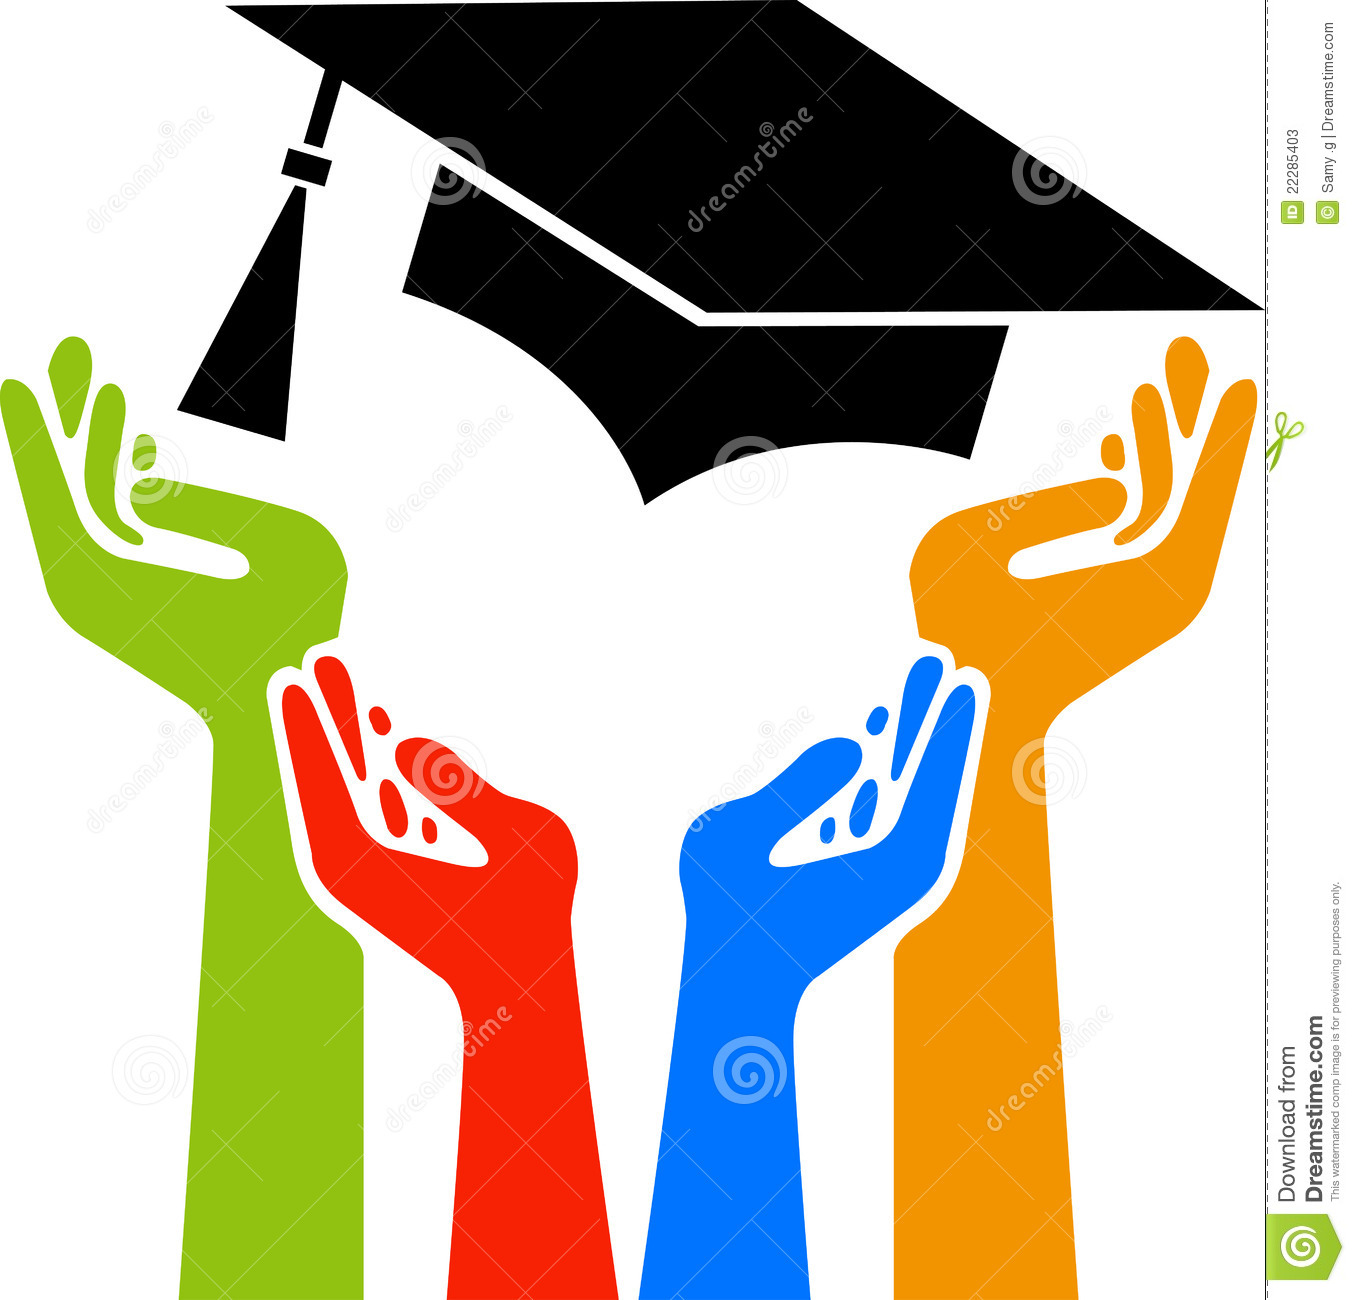 Illustration art of a hands graduation logo with isolated background.